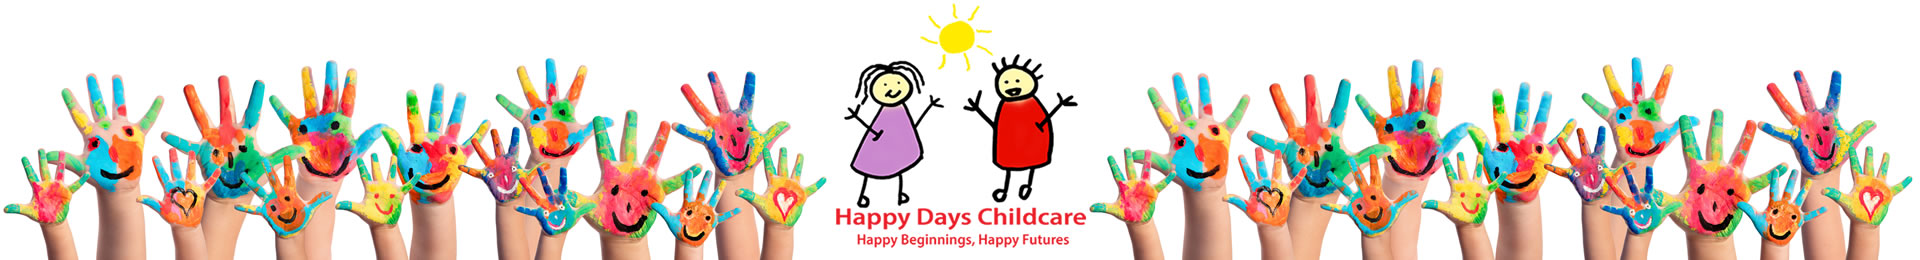 Happy Days Childcare Nursery based in Suffolk